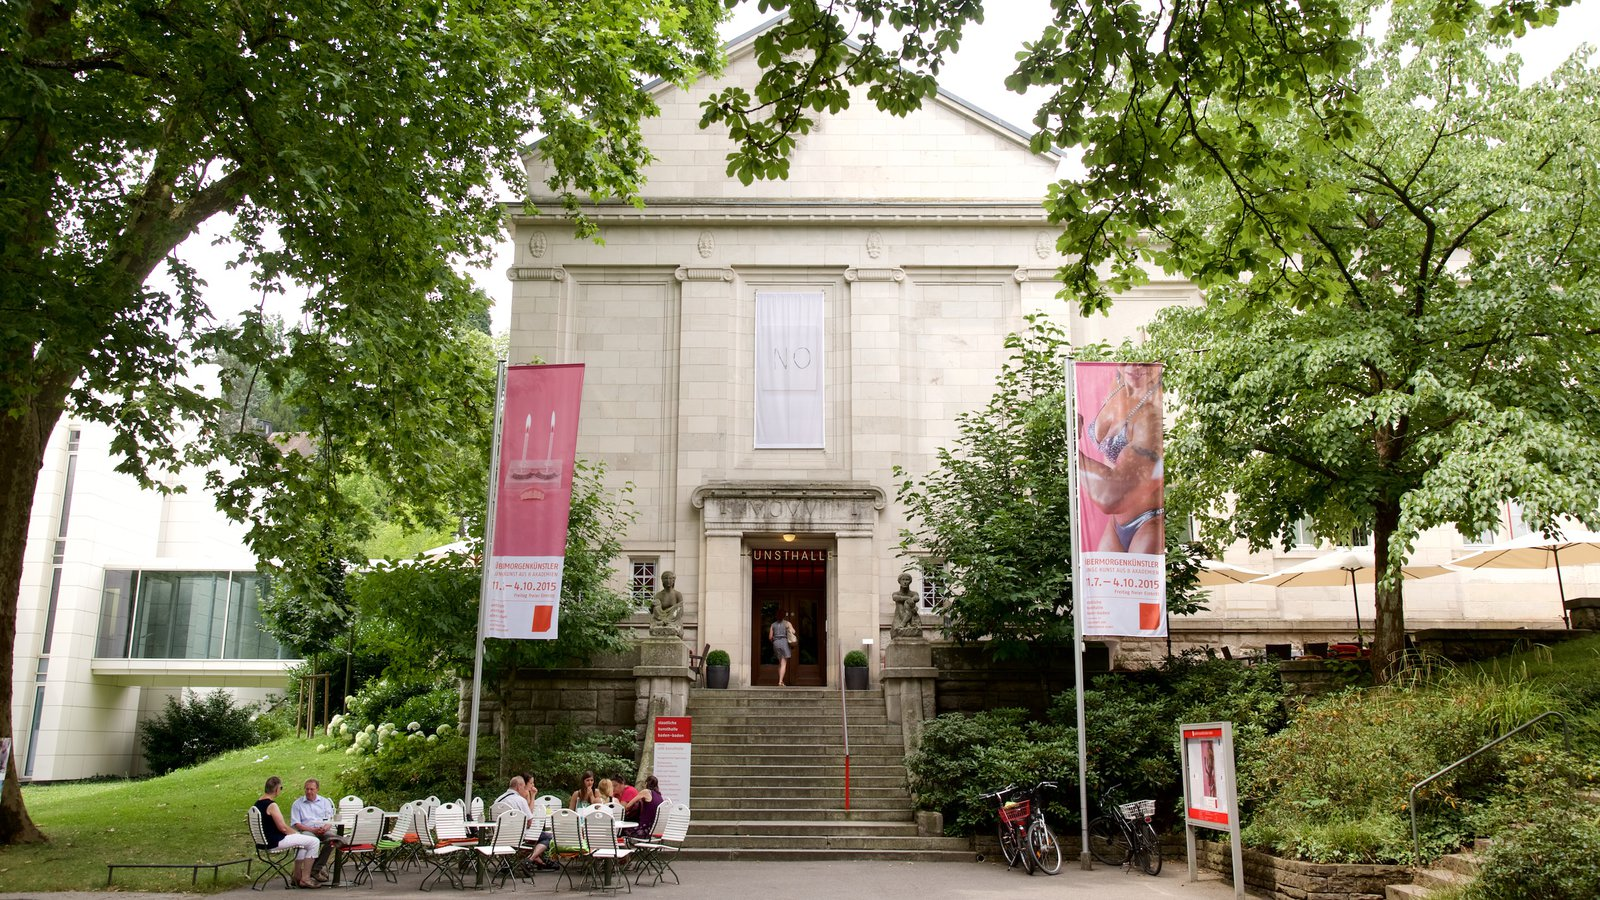 Staatliche Kunsthalle The Black Forest, Attraction Pictures: View Images of Staatliche Kunsthalle Baden-Baden